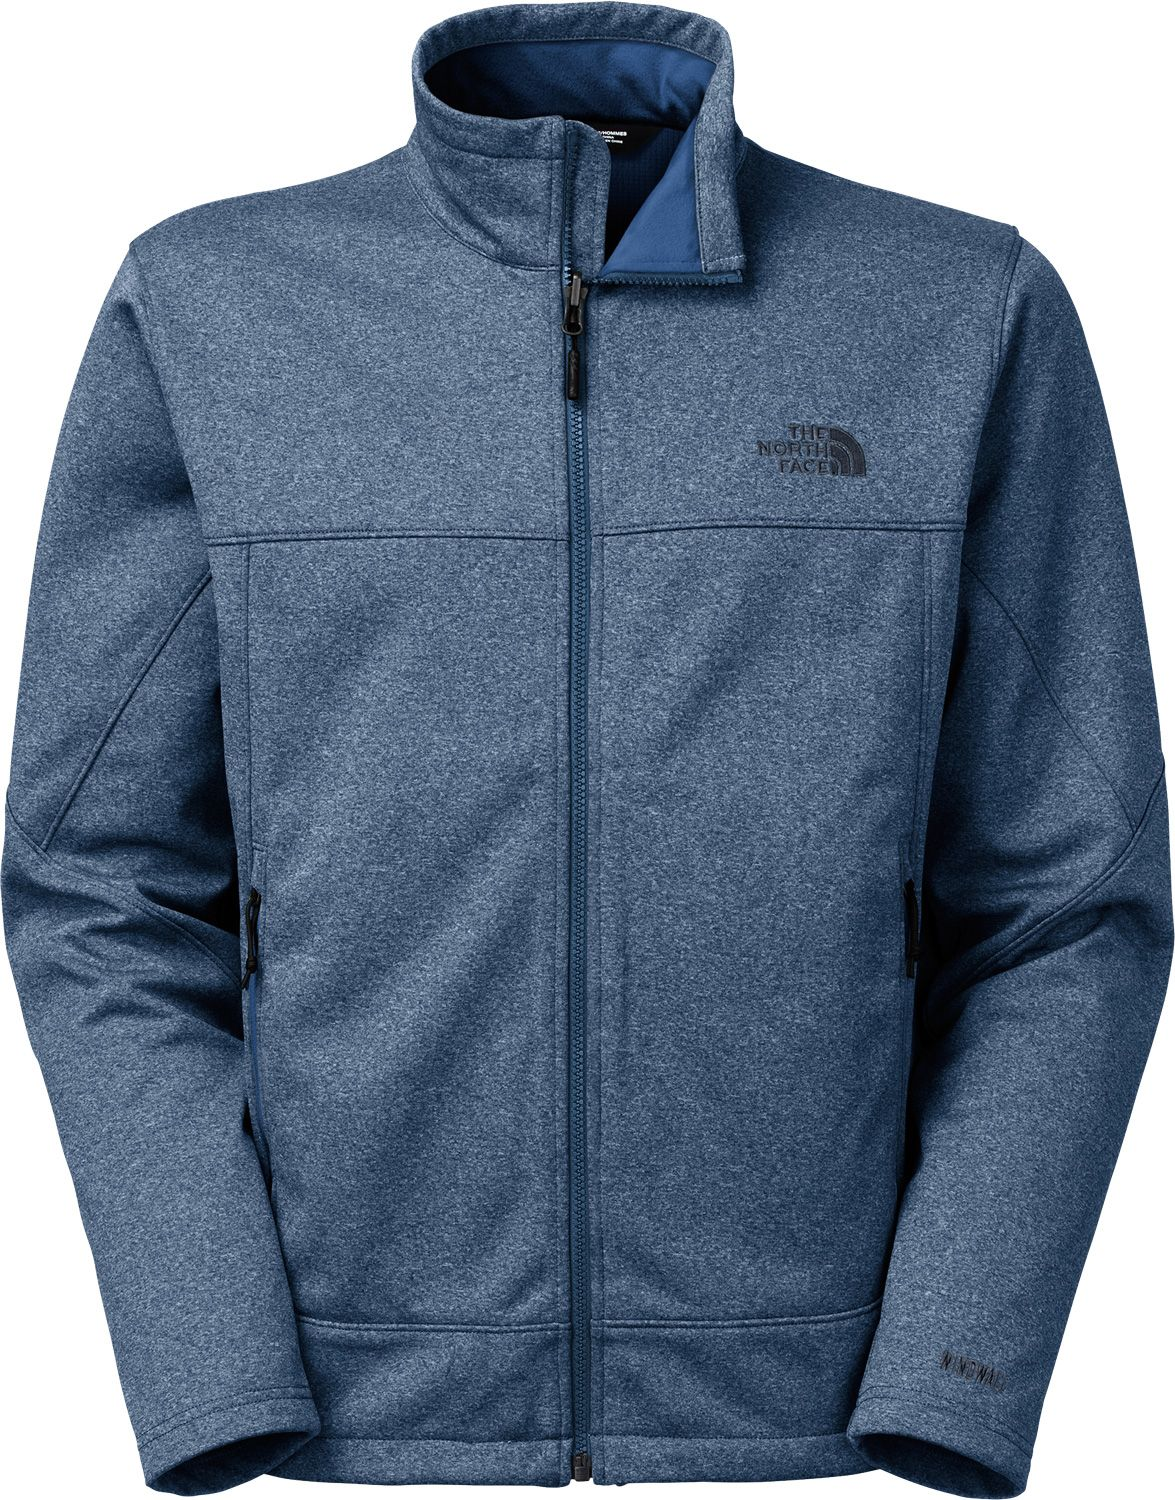 The North Face Men's Canyonwall Fleece Jacket | DICK'S Sporting Goods